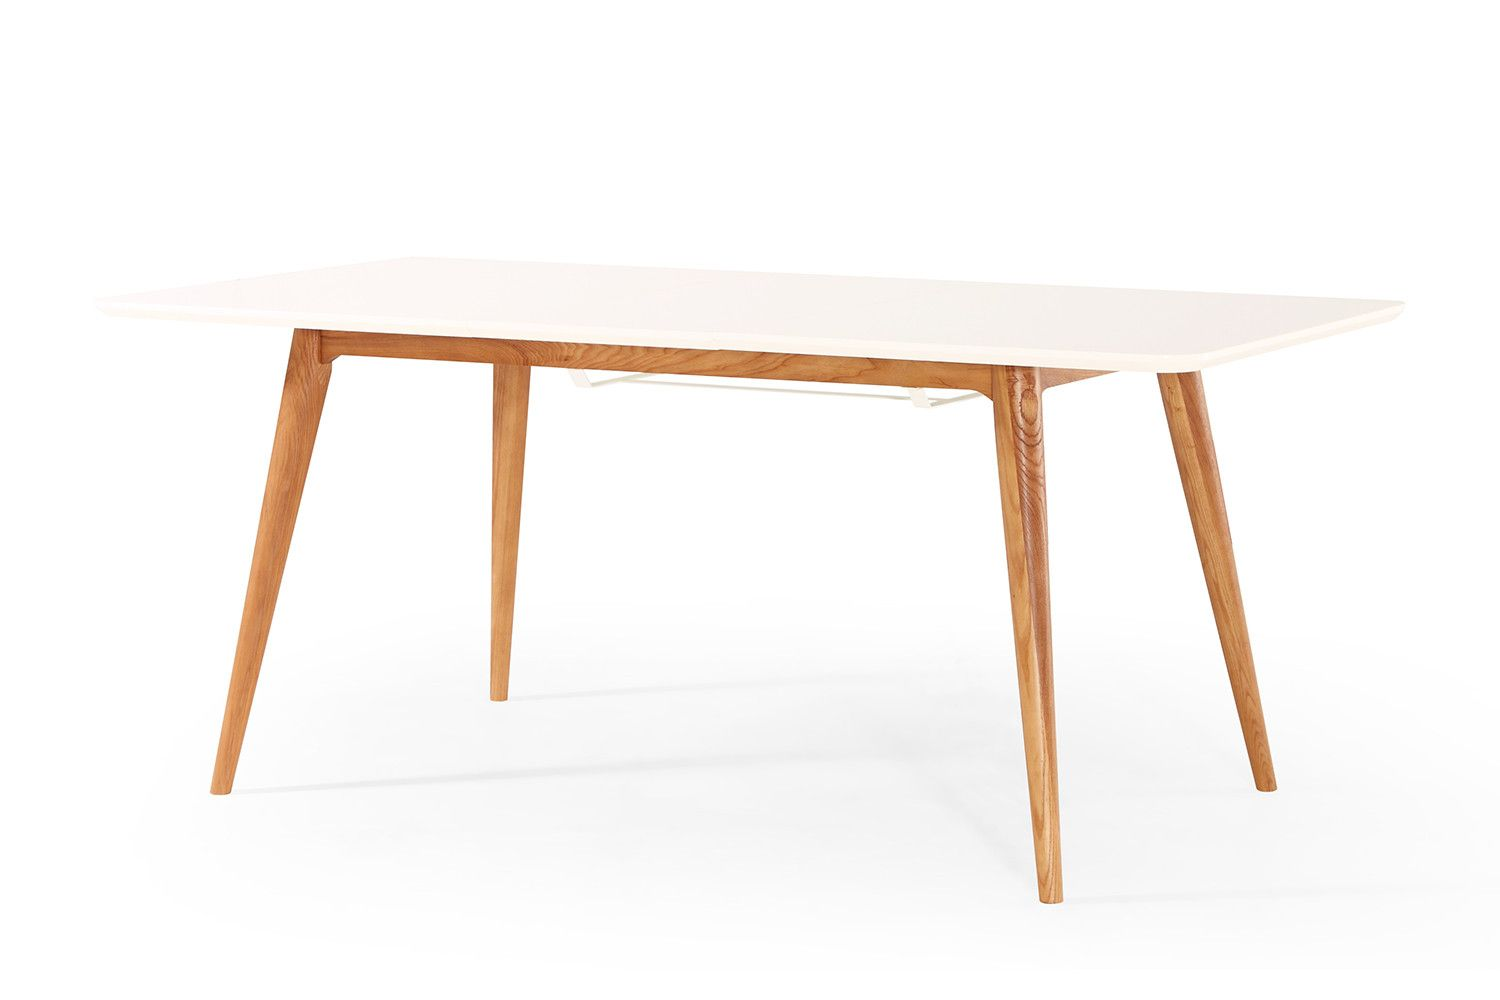 Table Ronde Scandinave Rallonge Table De Salle à Manger Extensible Scandinave Wyna In 2019 D